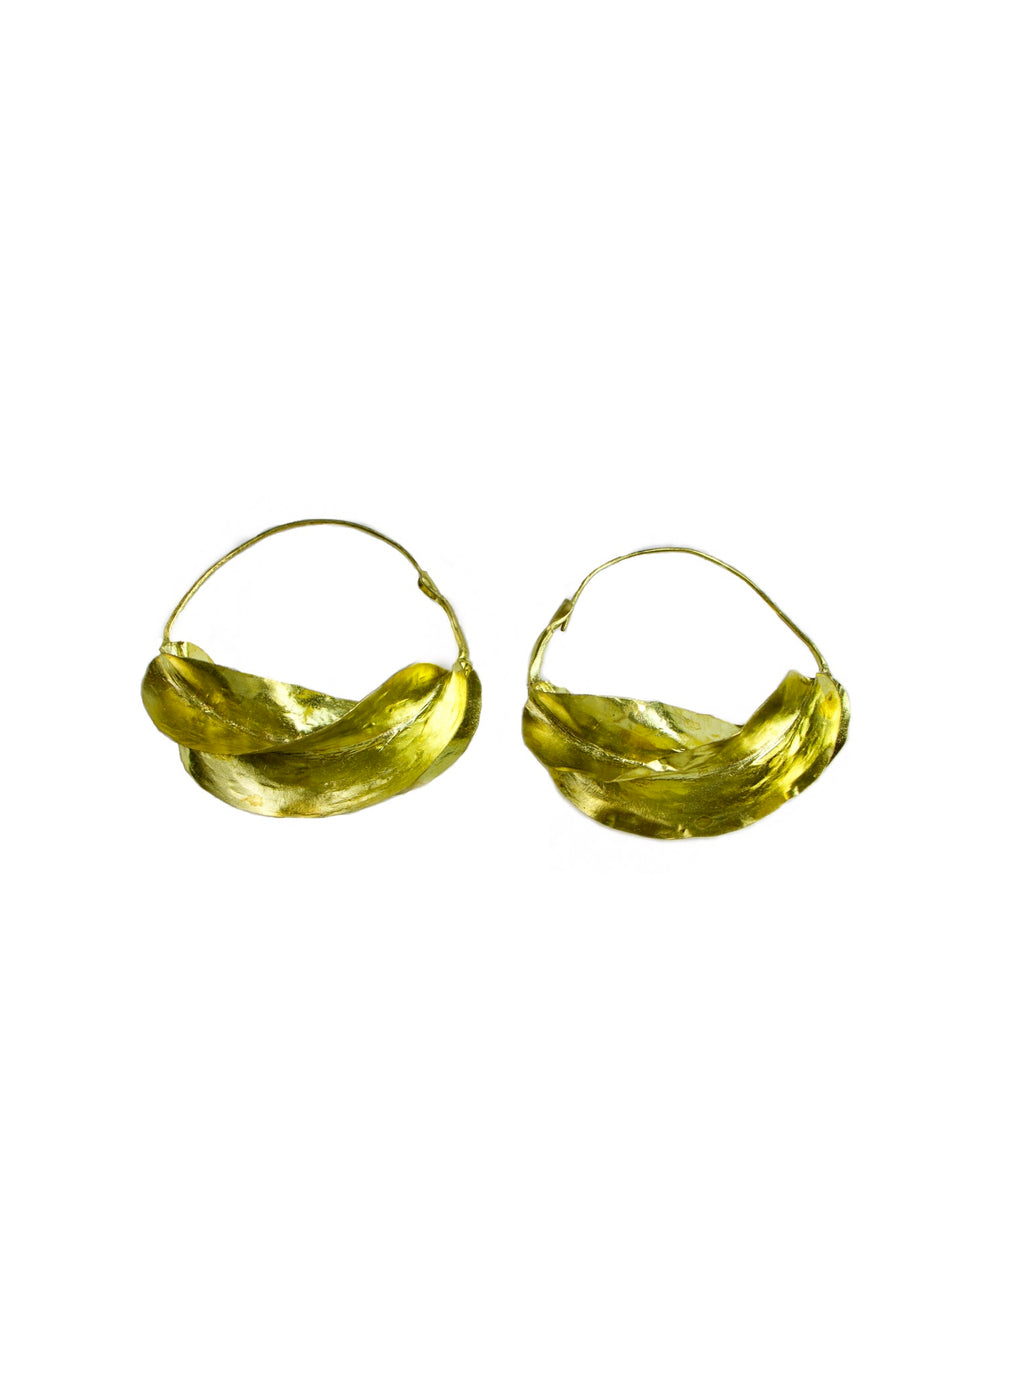 Fulani Earrings - Chen Burkett New York